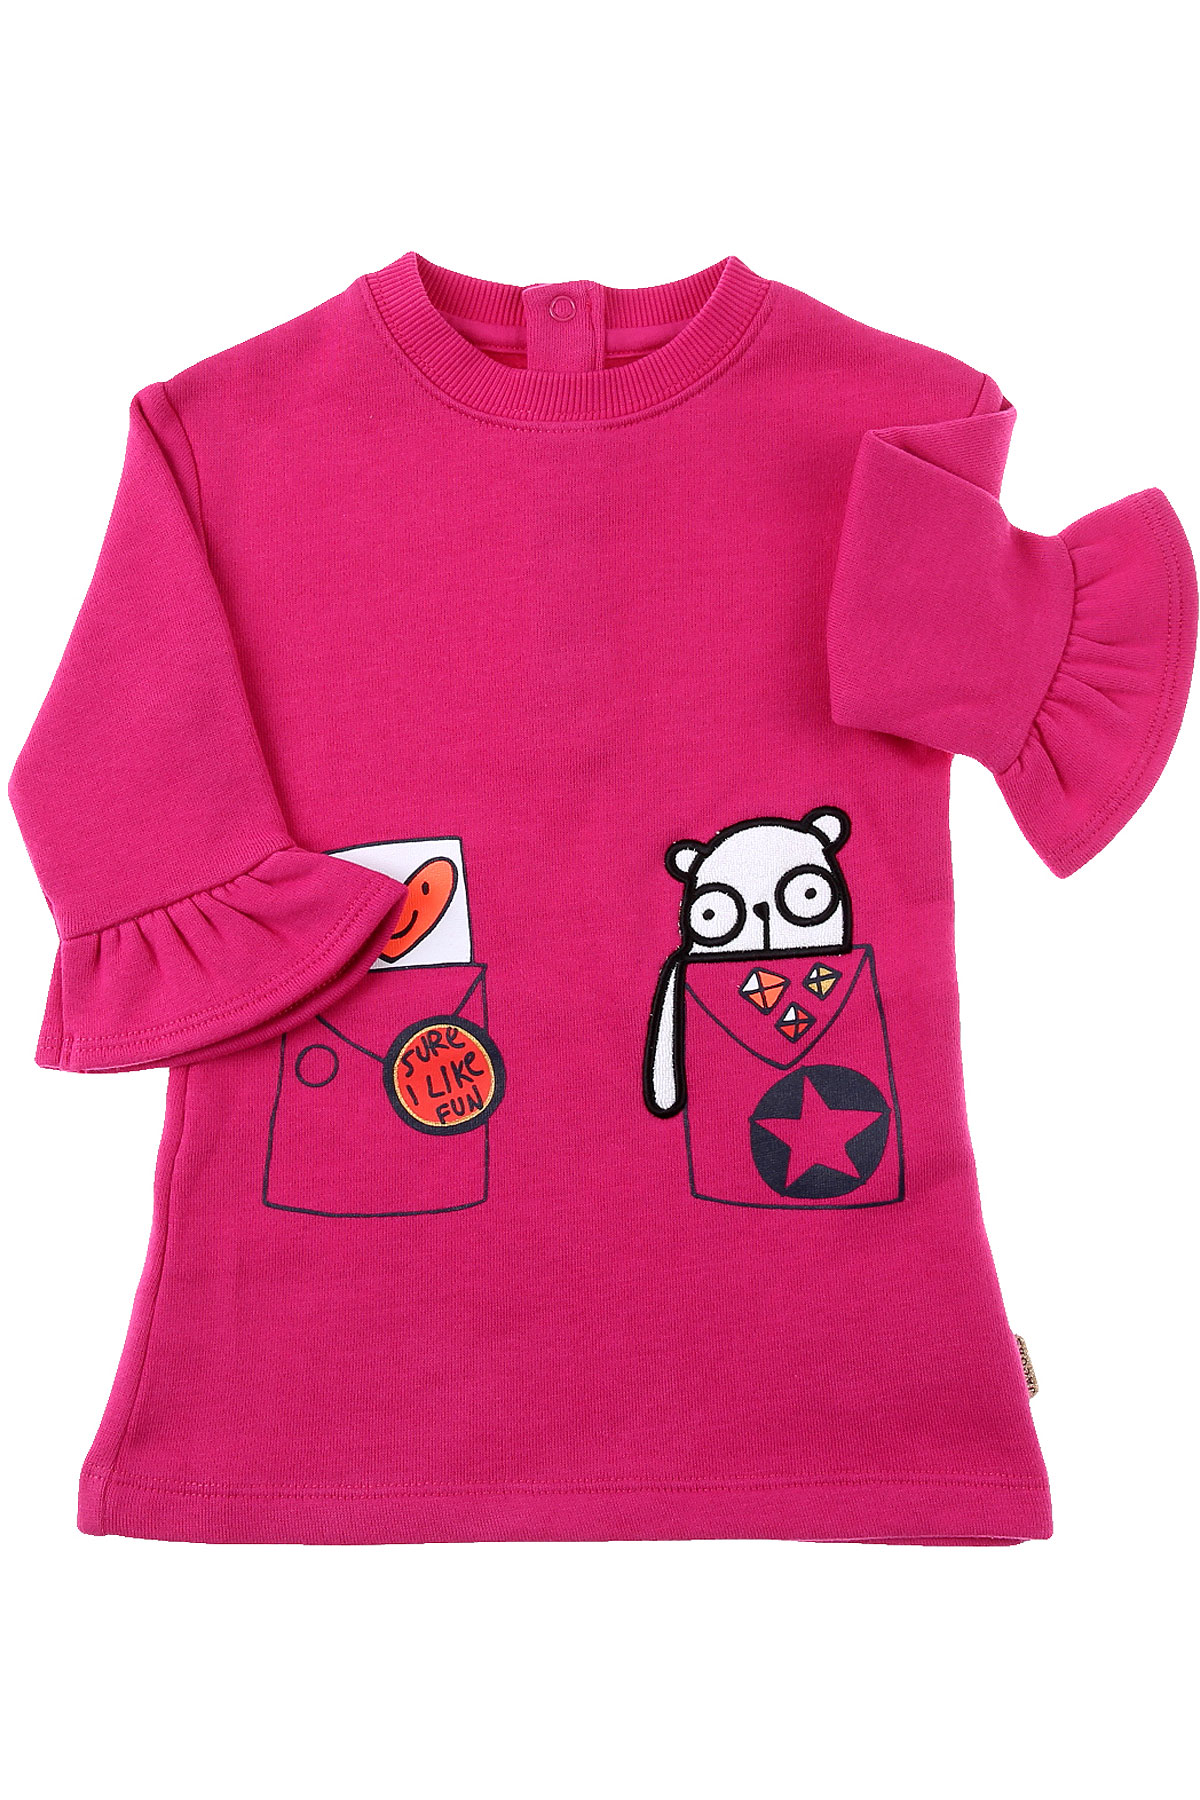 Marc Jacobs Baby Dress for Girls On Sale, Magenta, Cotton, 2019, 12M 18M 2Y 3Y 6M 9M